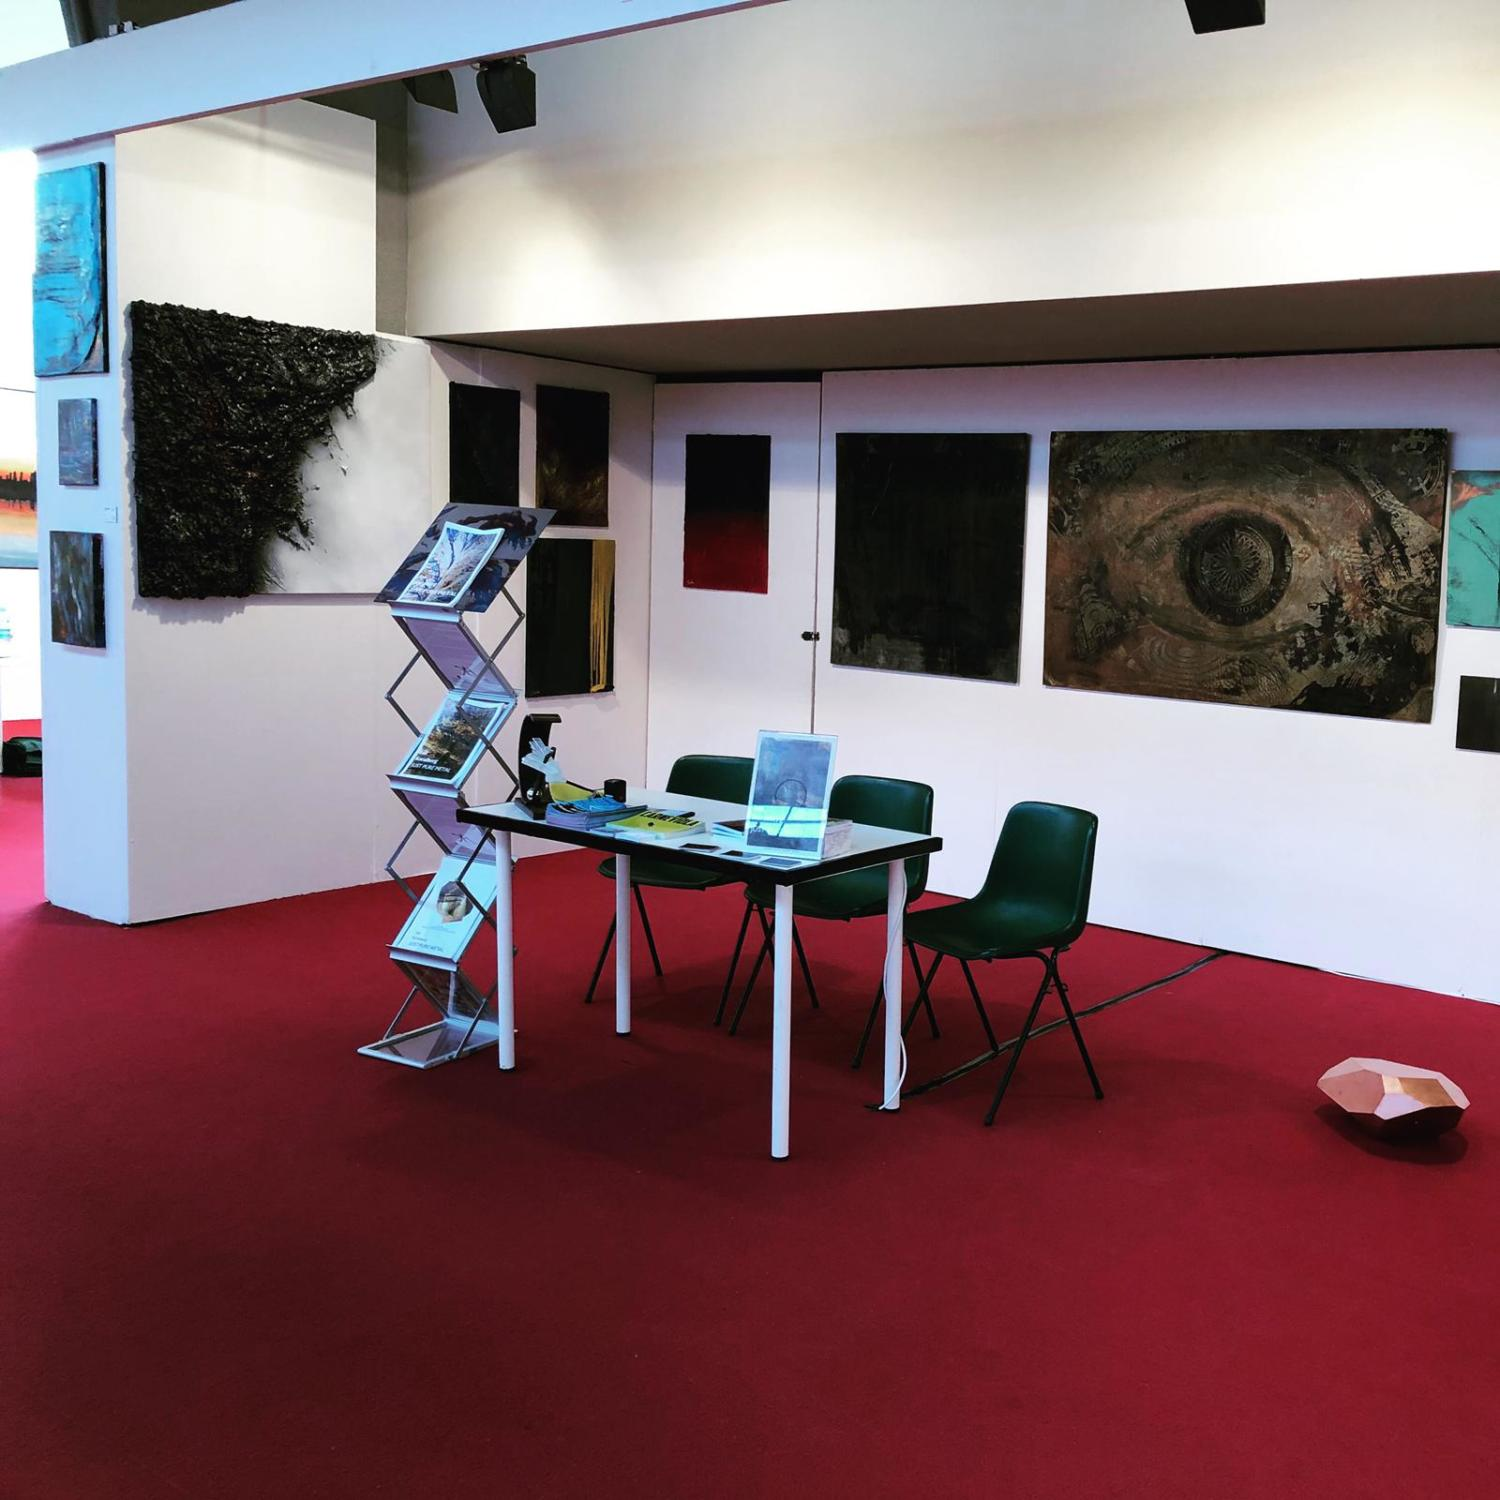 Pavia ART Talent, CARNEVIOLA Art Project: galleria d'Arte a La Spezia